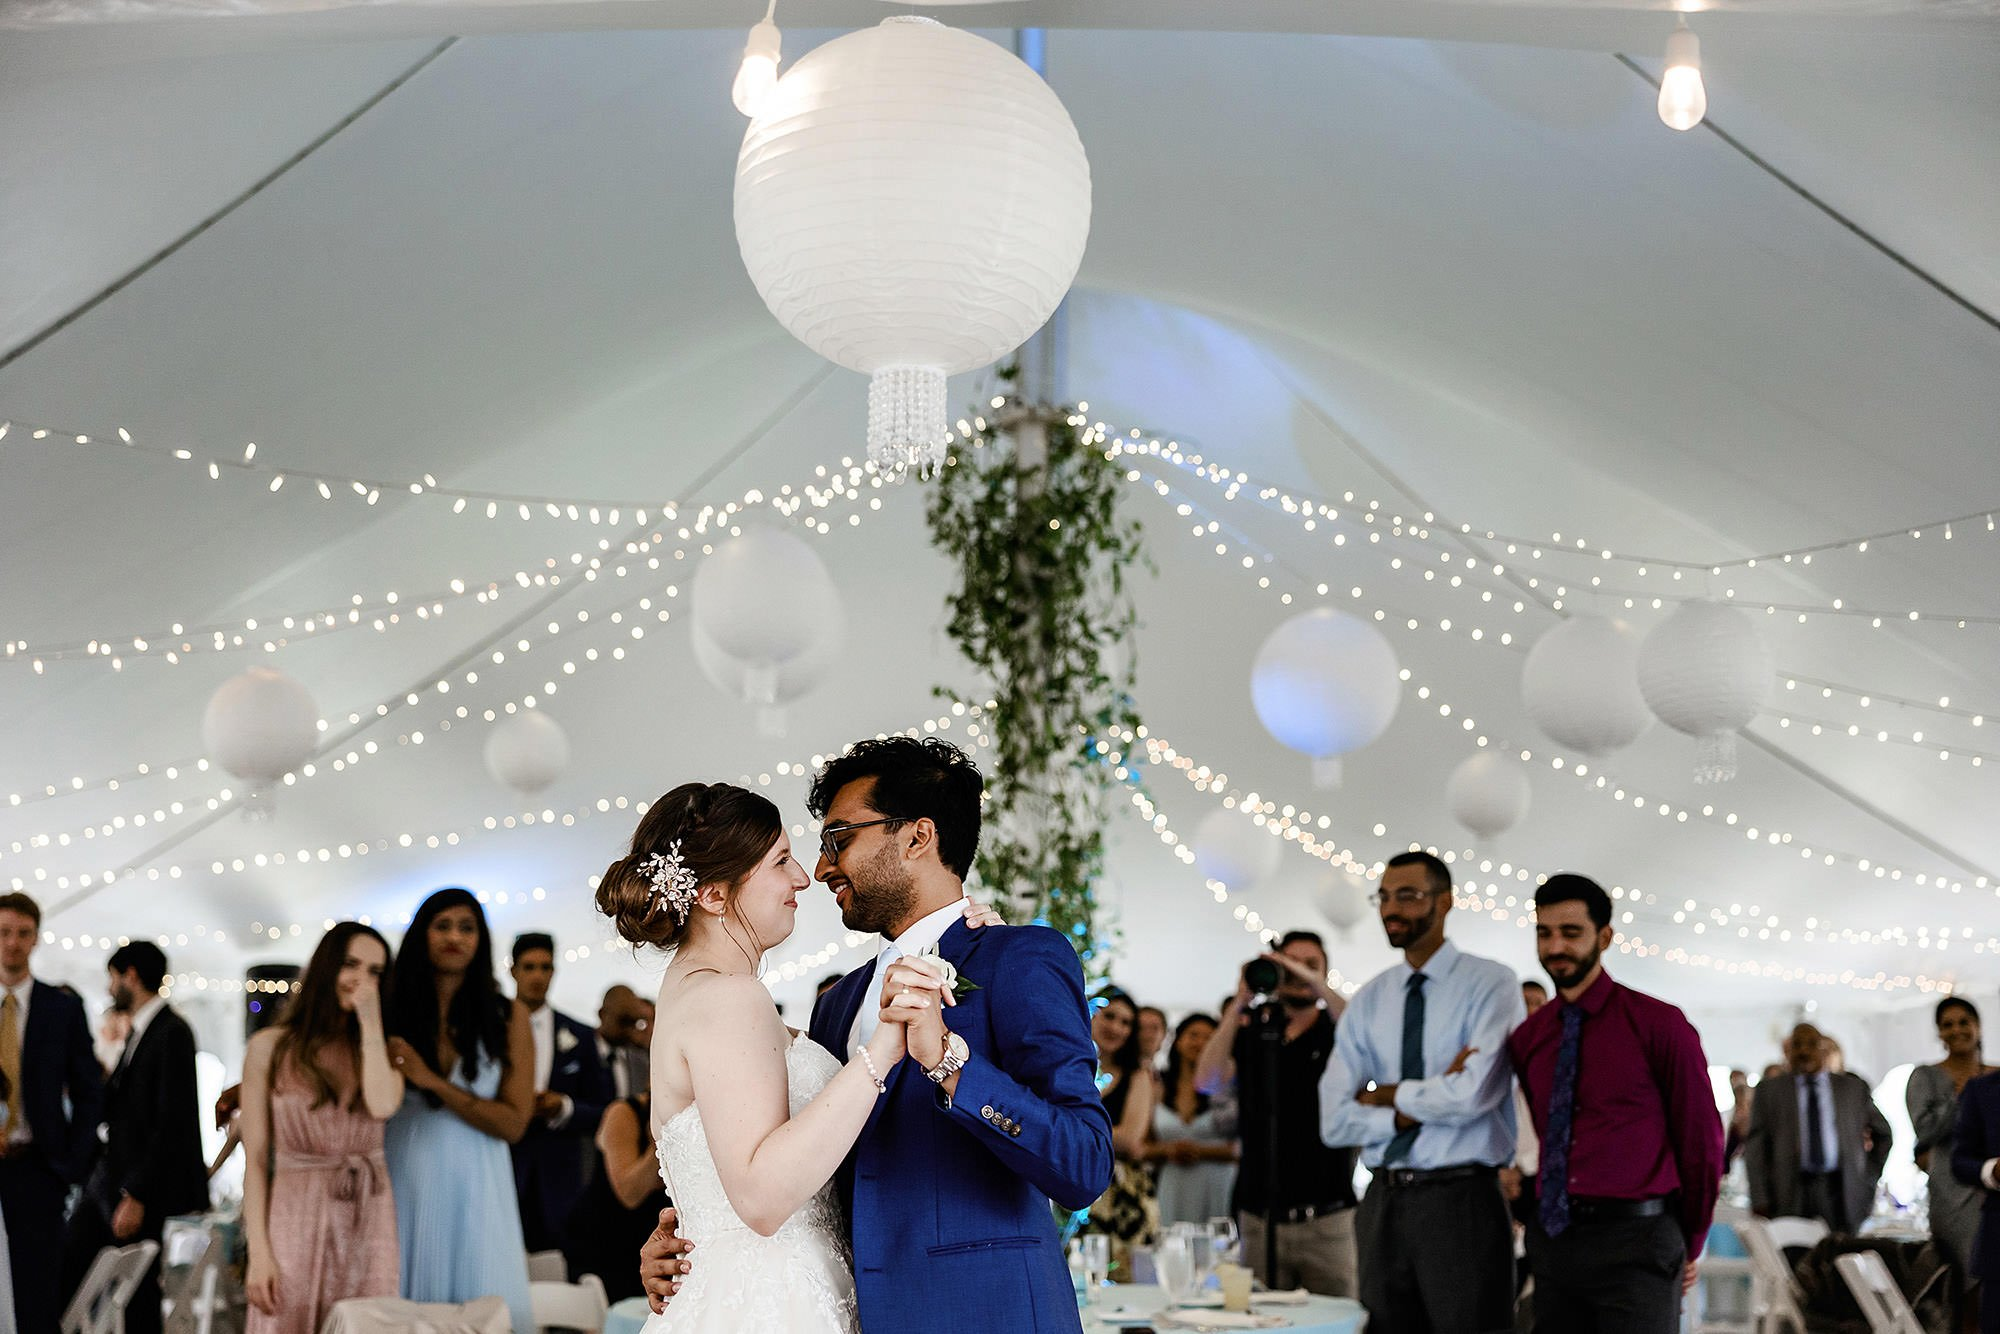 White Cliffs Country Club Wedding  I  The bride and groom share their first dance during the tented reception on Cape Cod.